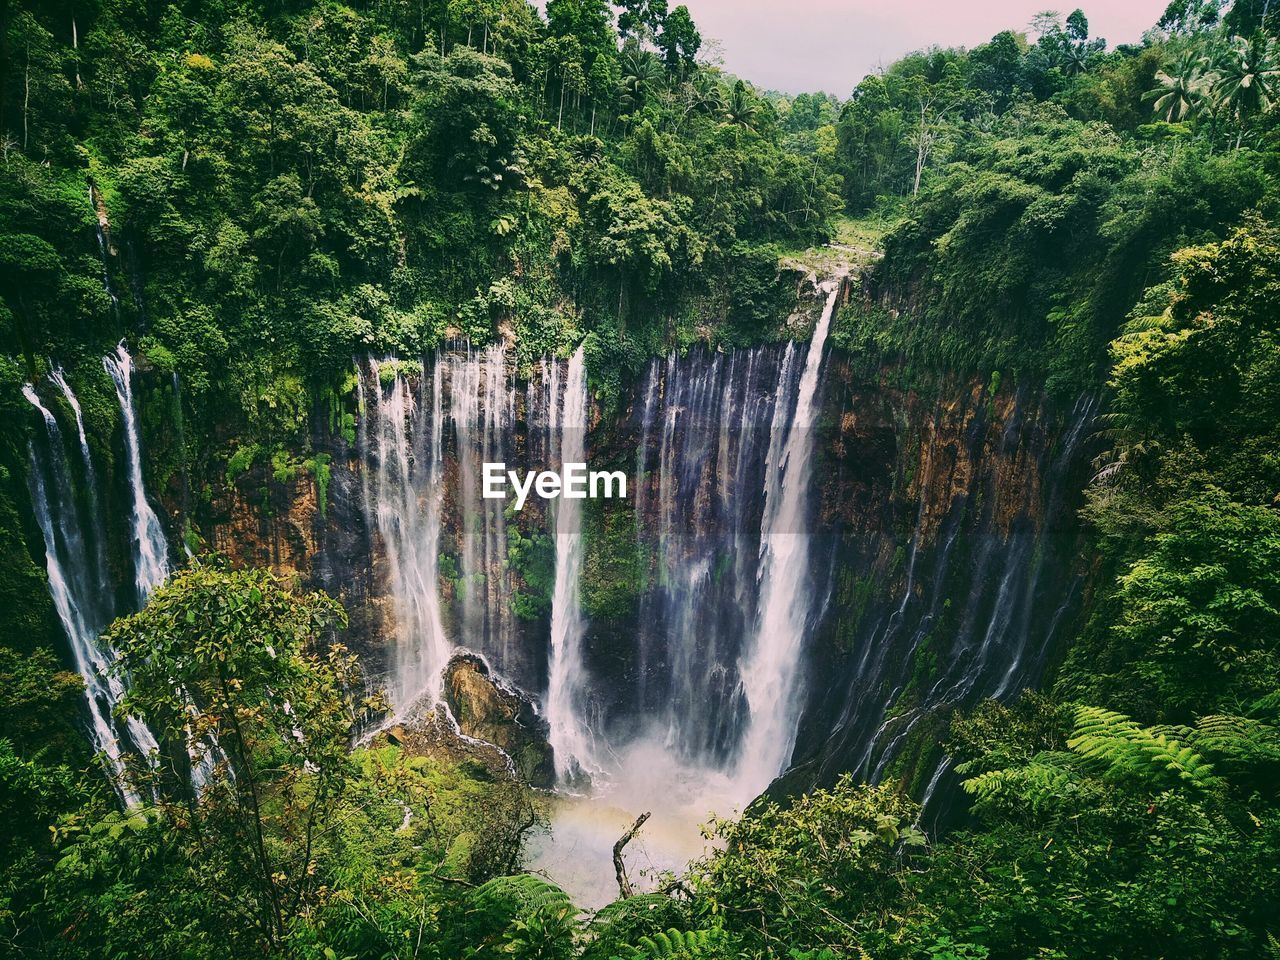 waterfall, plant, scenics - nature, tree, water, beauty in nature, flowing water, motion, forest, nature, land, growth, long exposure, rock, green color, blurred motion, environment, non-urban scene, rock - object, no people, outdoors, rainforest, power in nature, flowing, falling water